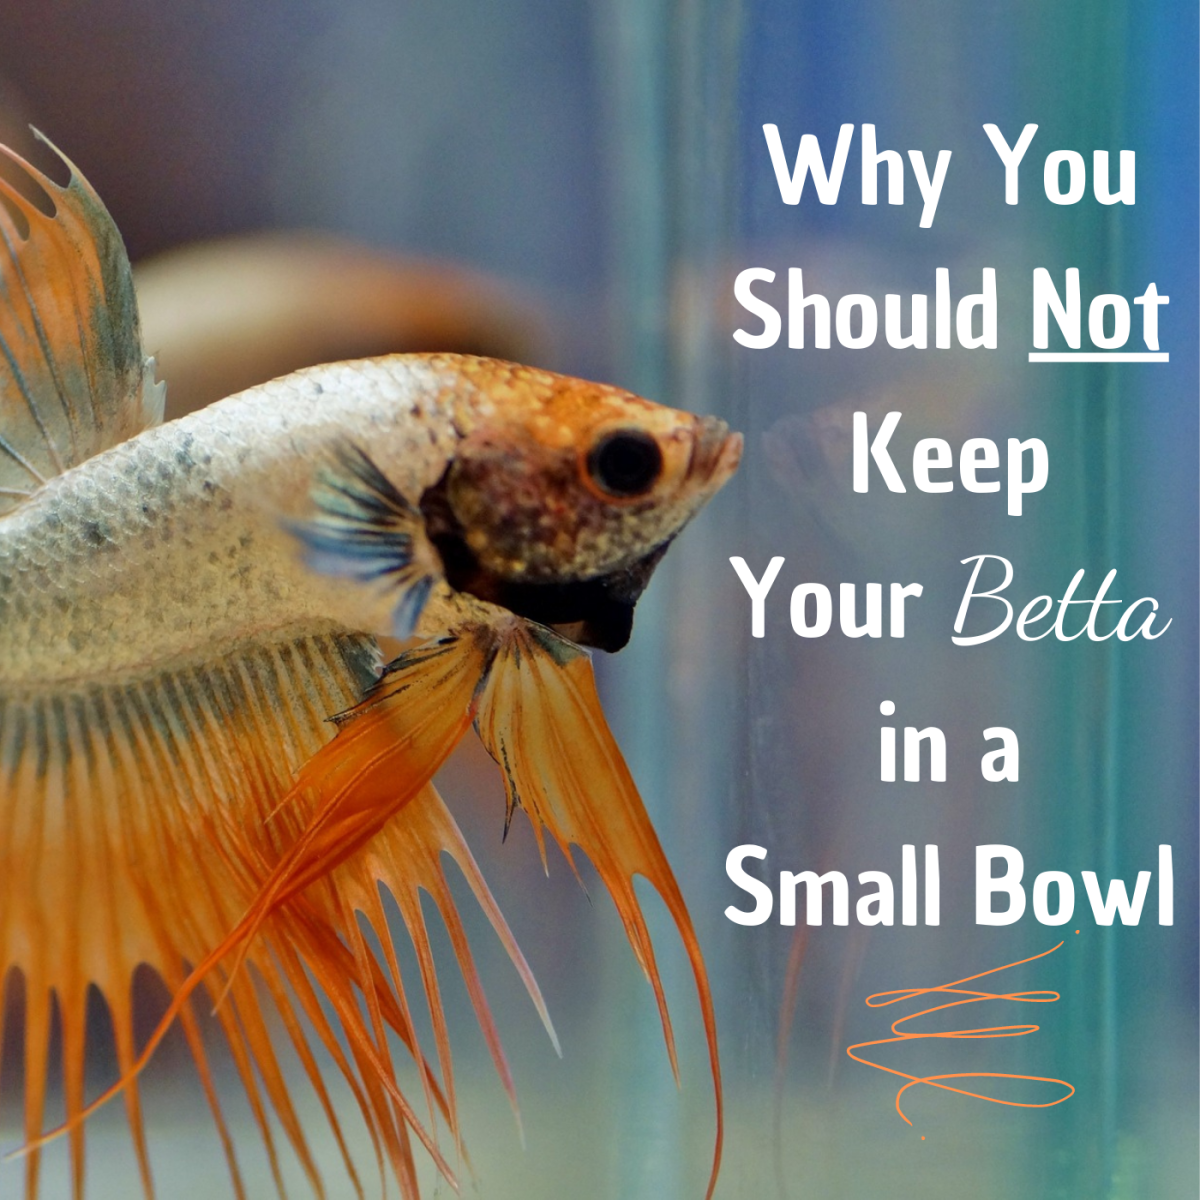 A small bowl is an insufficient habitat for a betta fish. Learn more about setting up an appropriate, healthy habitat for your betta.